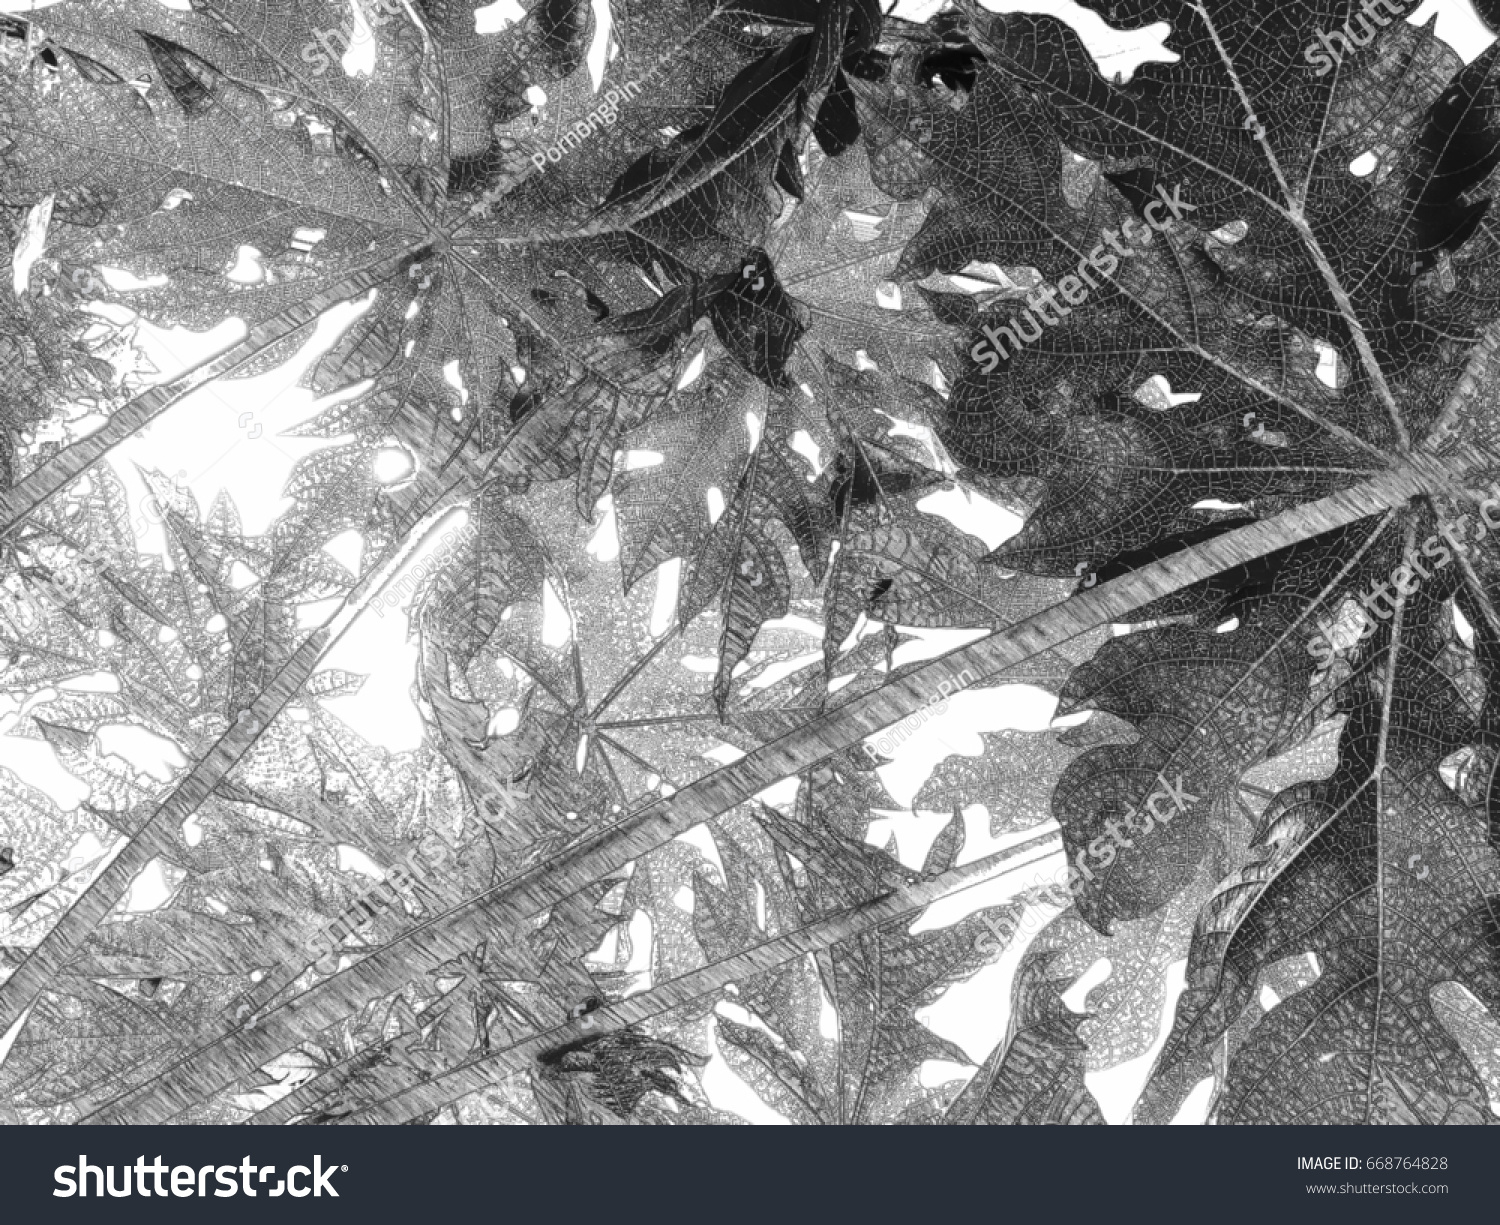 Papaya leaves and light background pencil drawings style mono tone